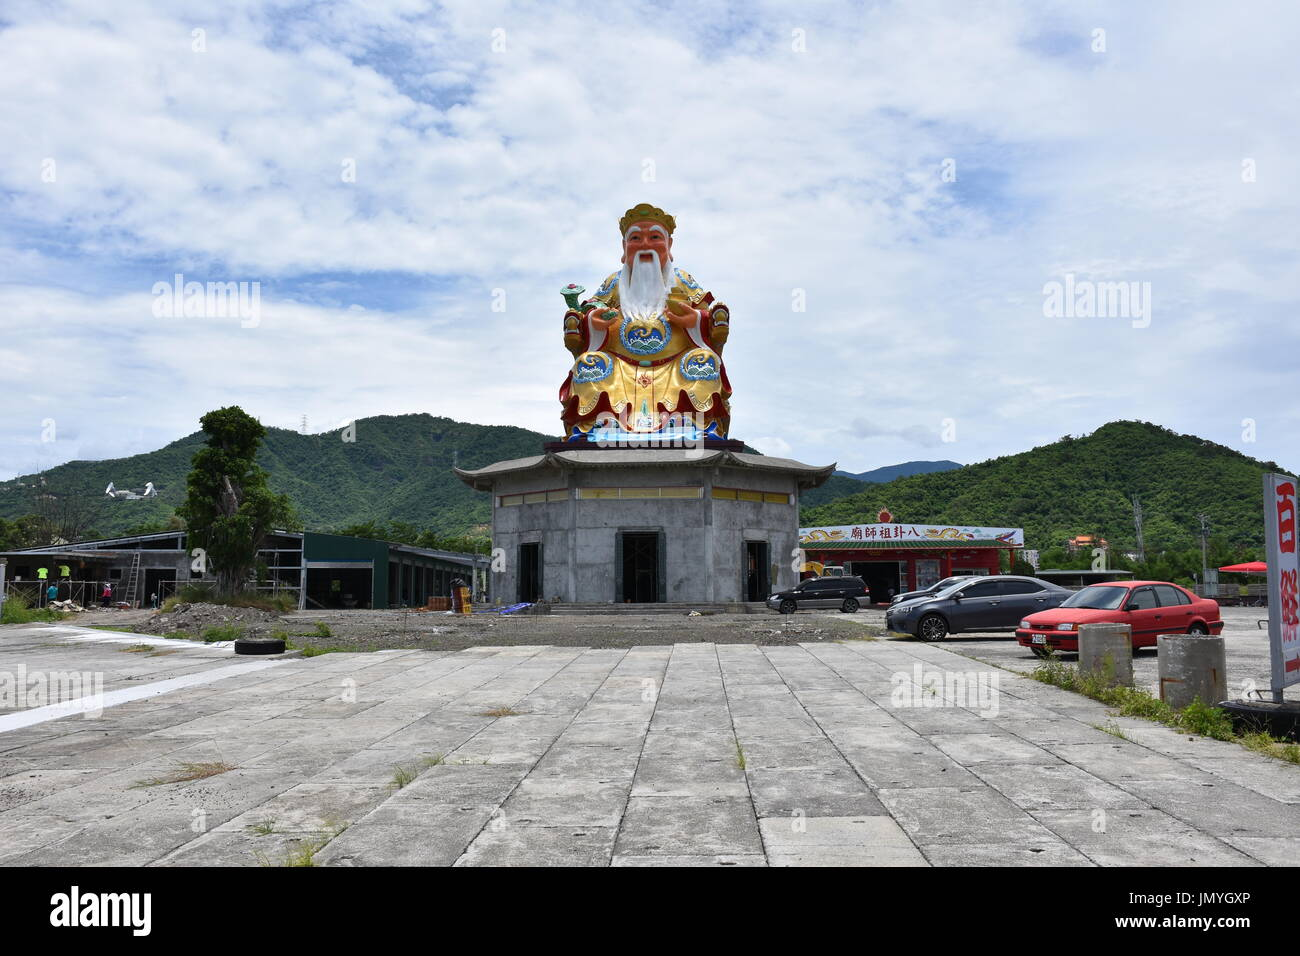 5 5 In Meters A Happy Buddha Statue That Stands Over 5 Meters Tall On Top Of A